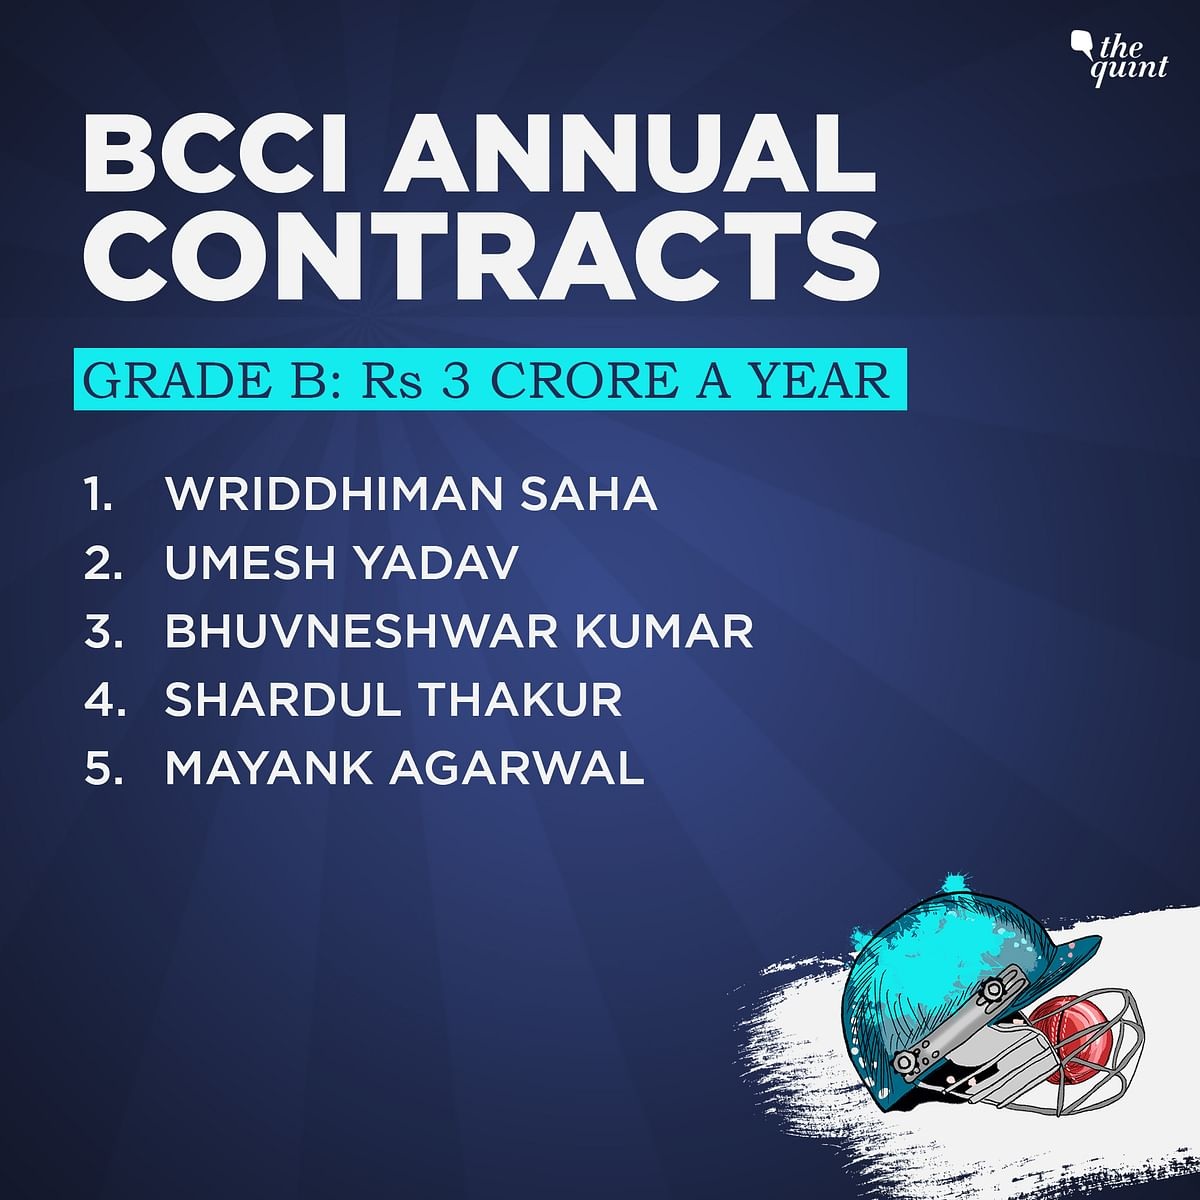 BCCI Men's Contracts: Rs 7 Crore a Year For Kohli, Rohit & Bumrah